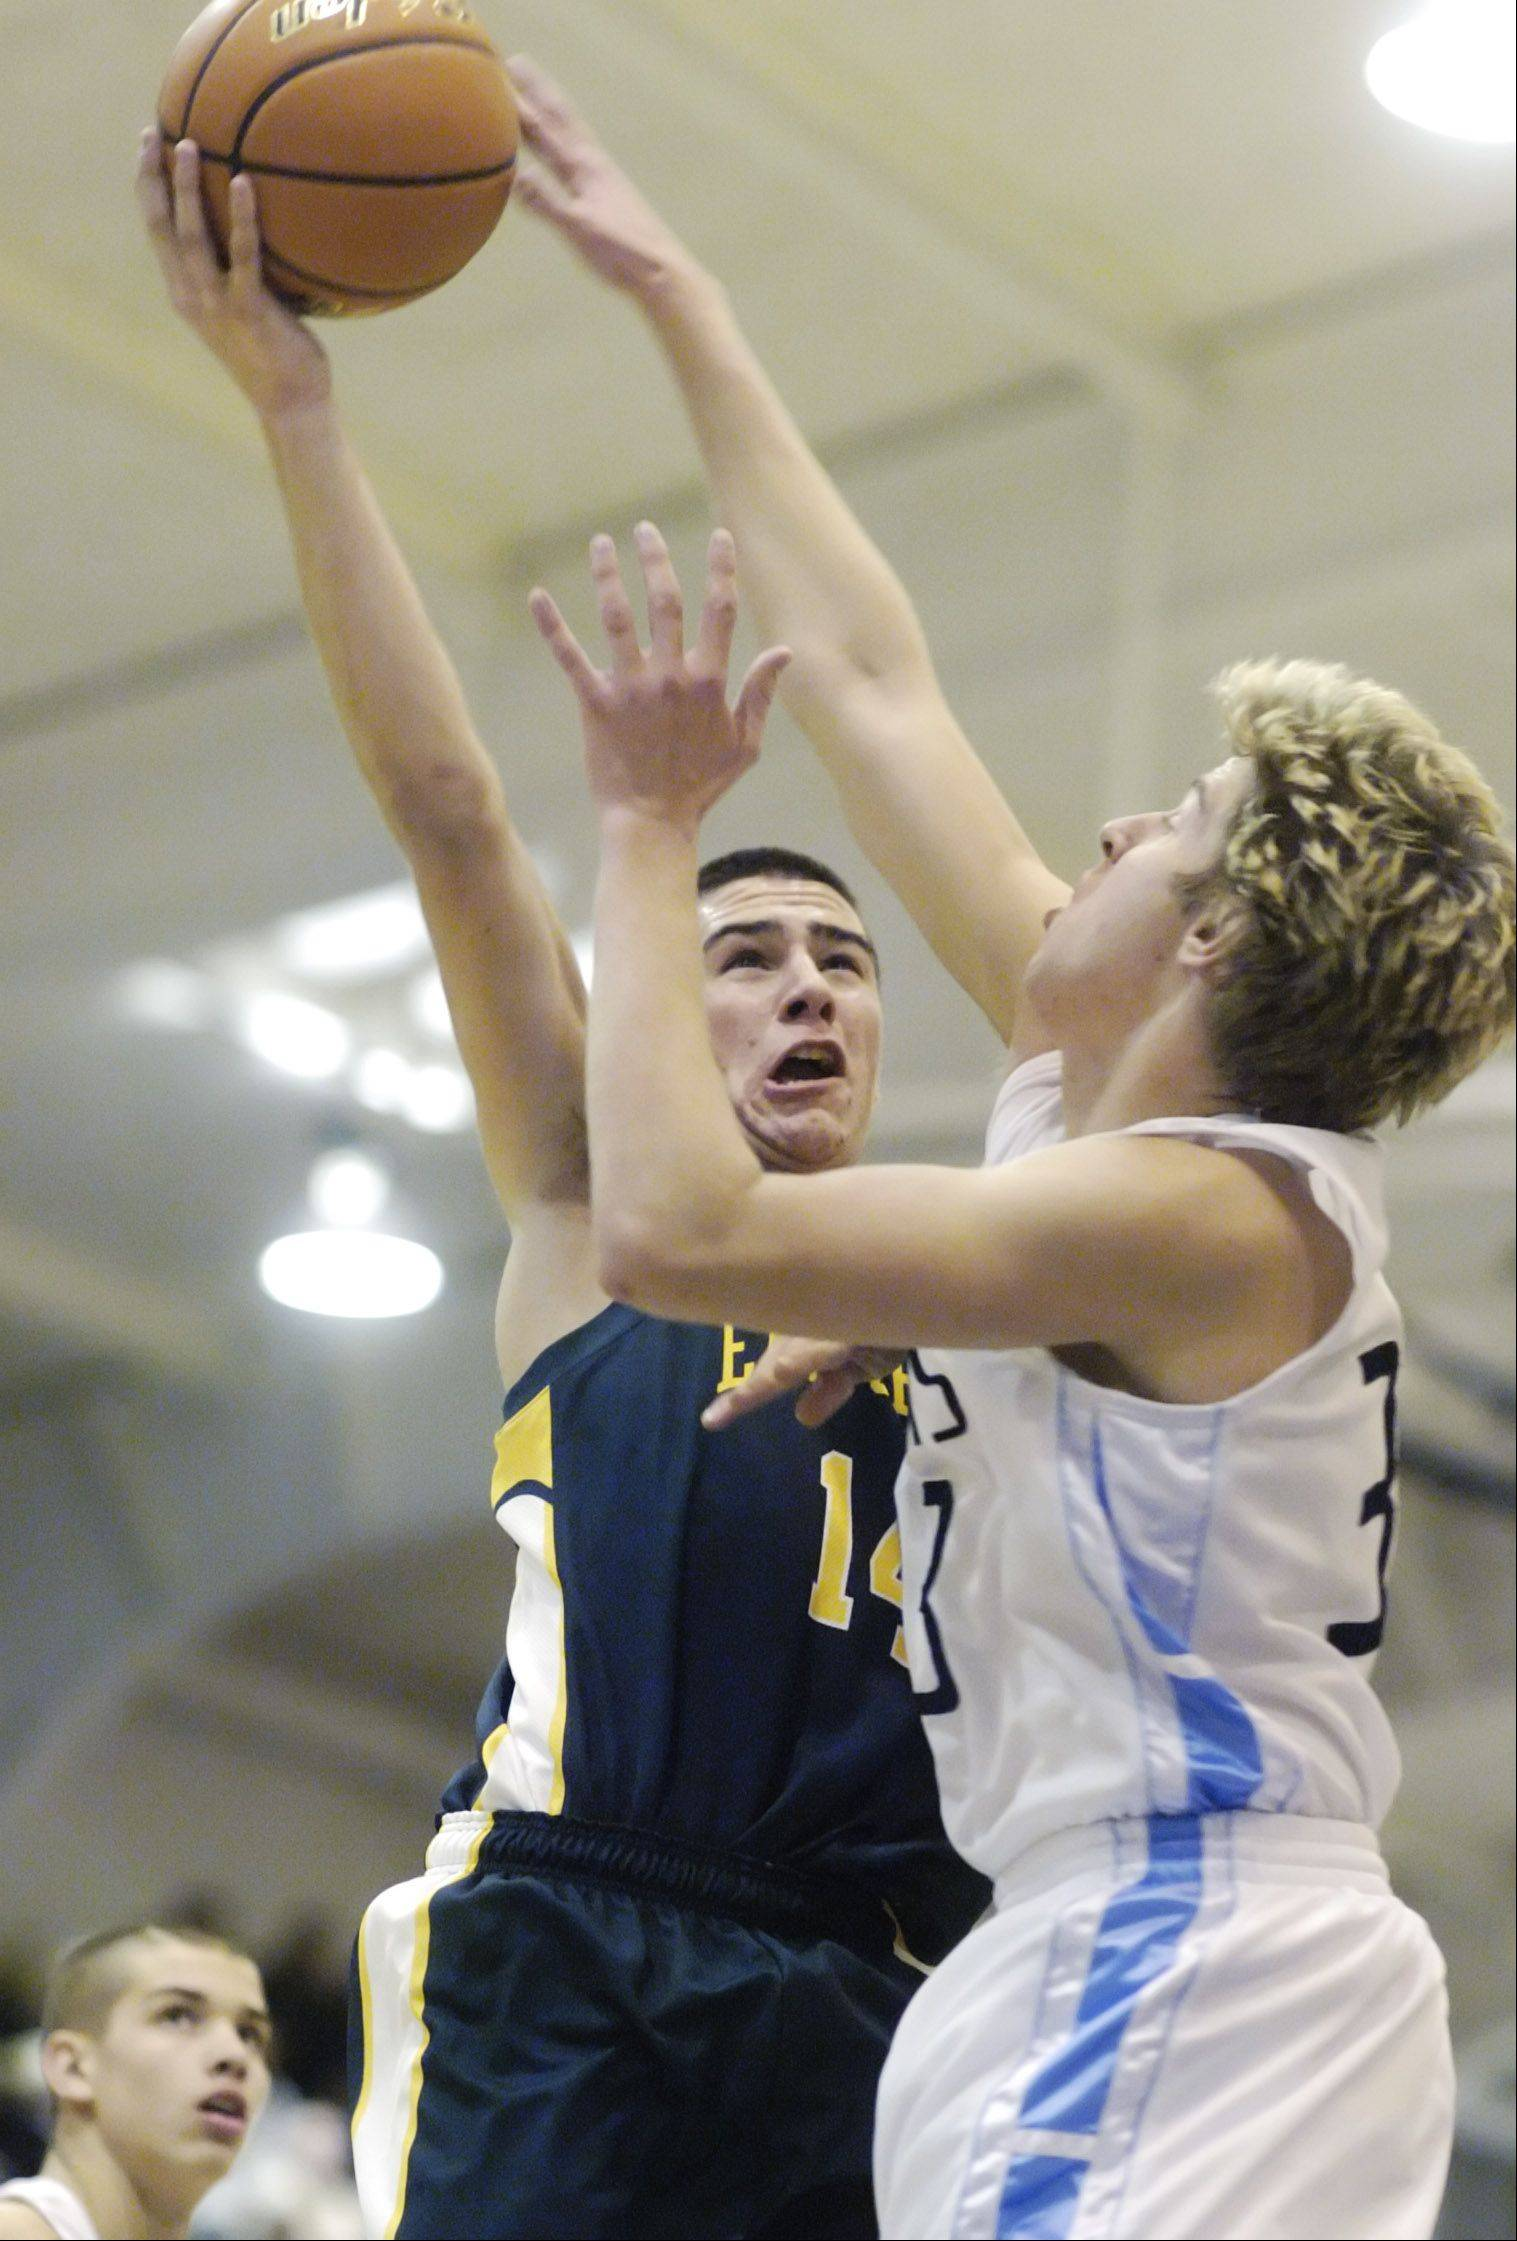 Elk Grove's Zachary Solorio drives to the basket against Prospect's Kevin Somogyi.